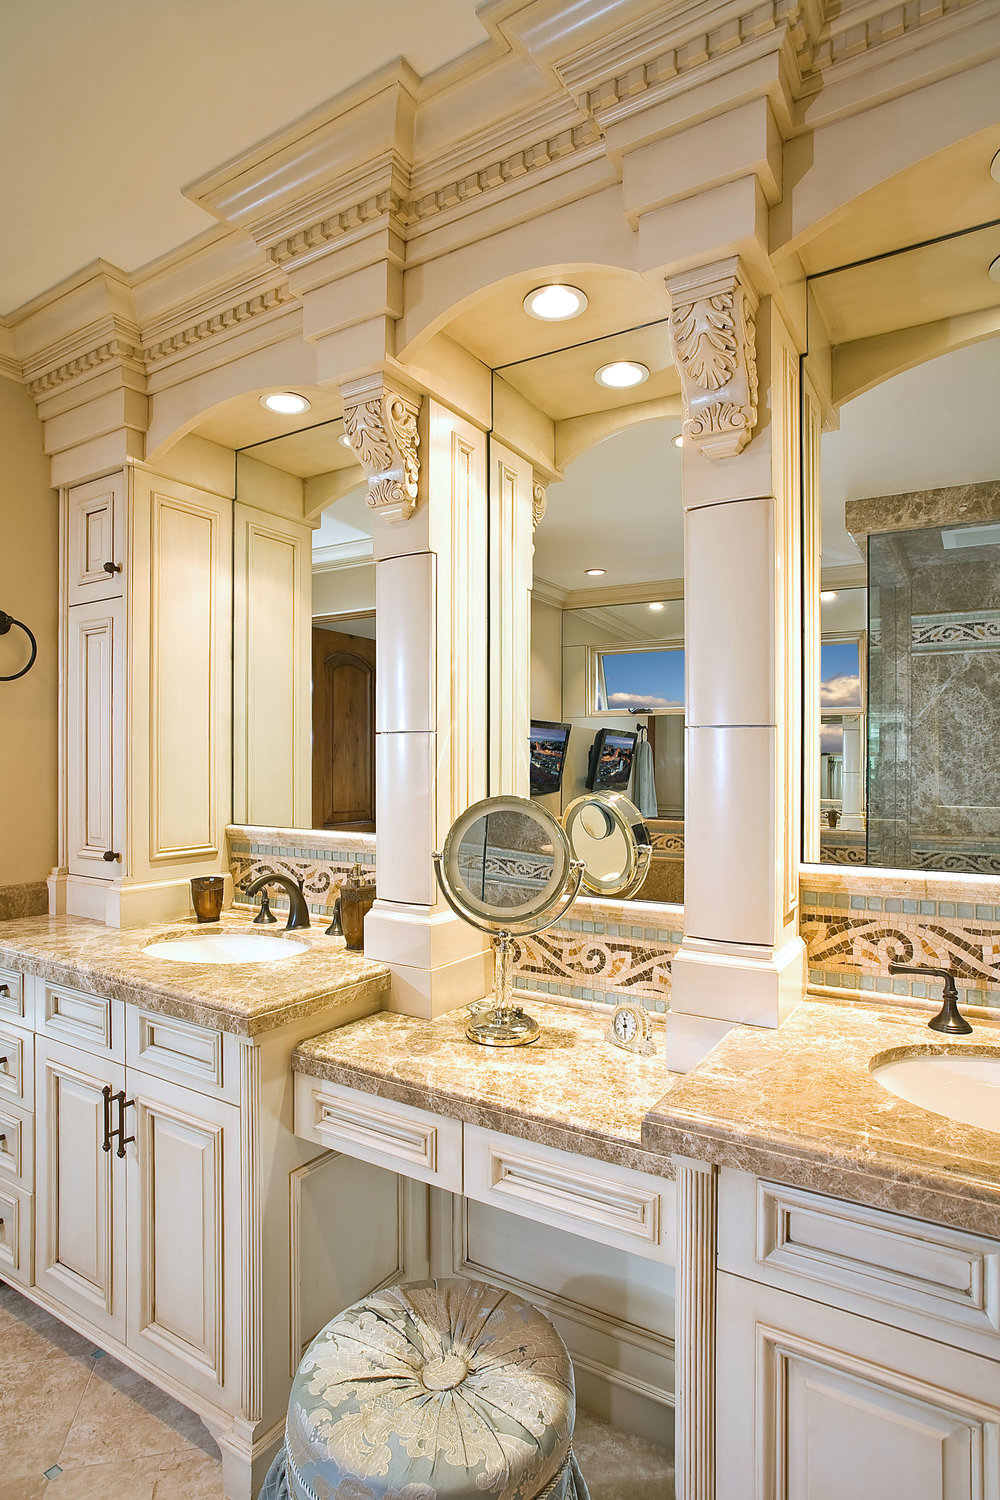 DEagles_BettingenRes_MasterBathroom_2510-11x8.jpg